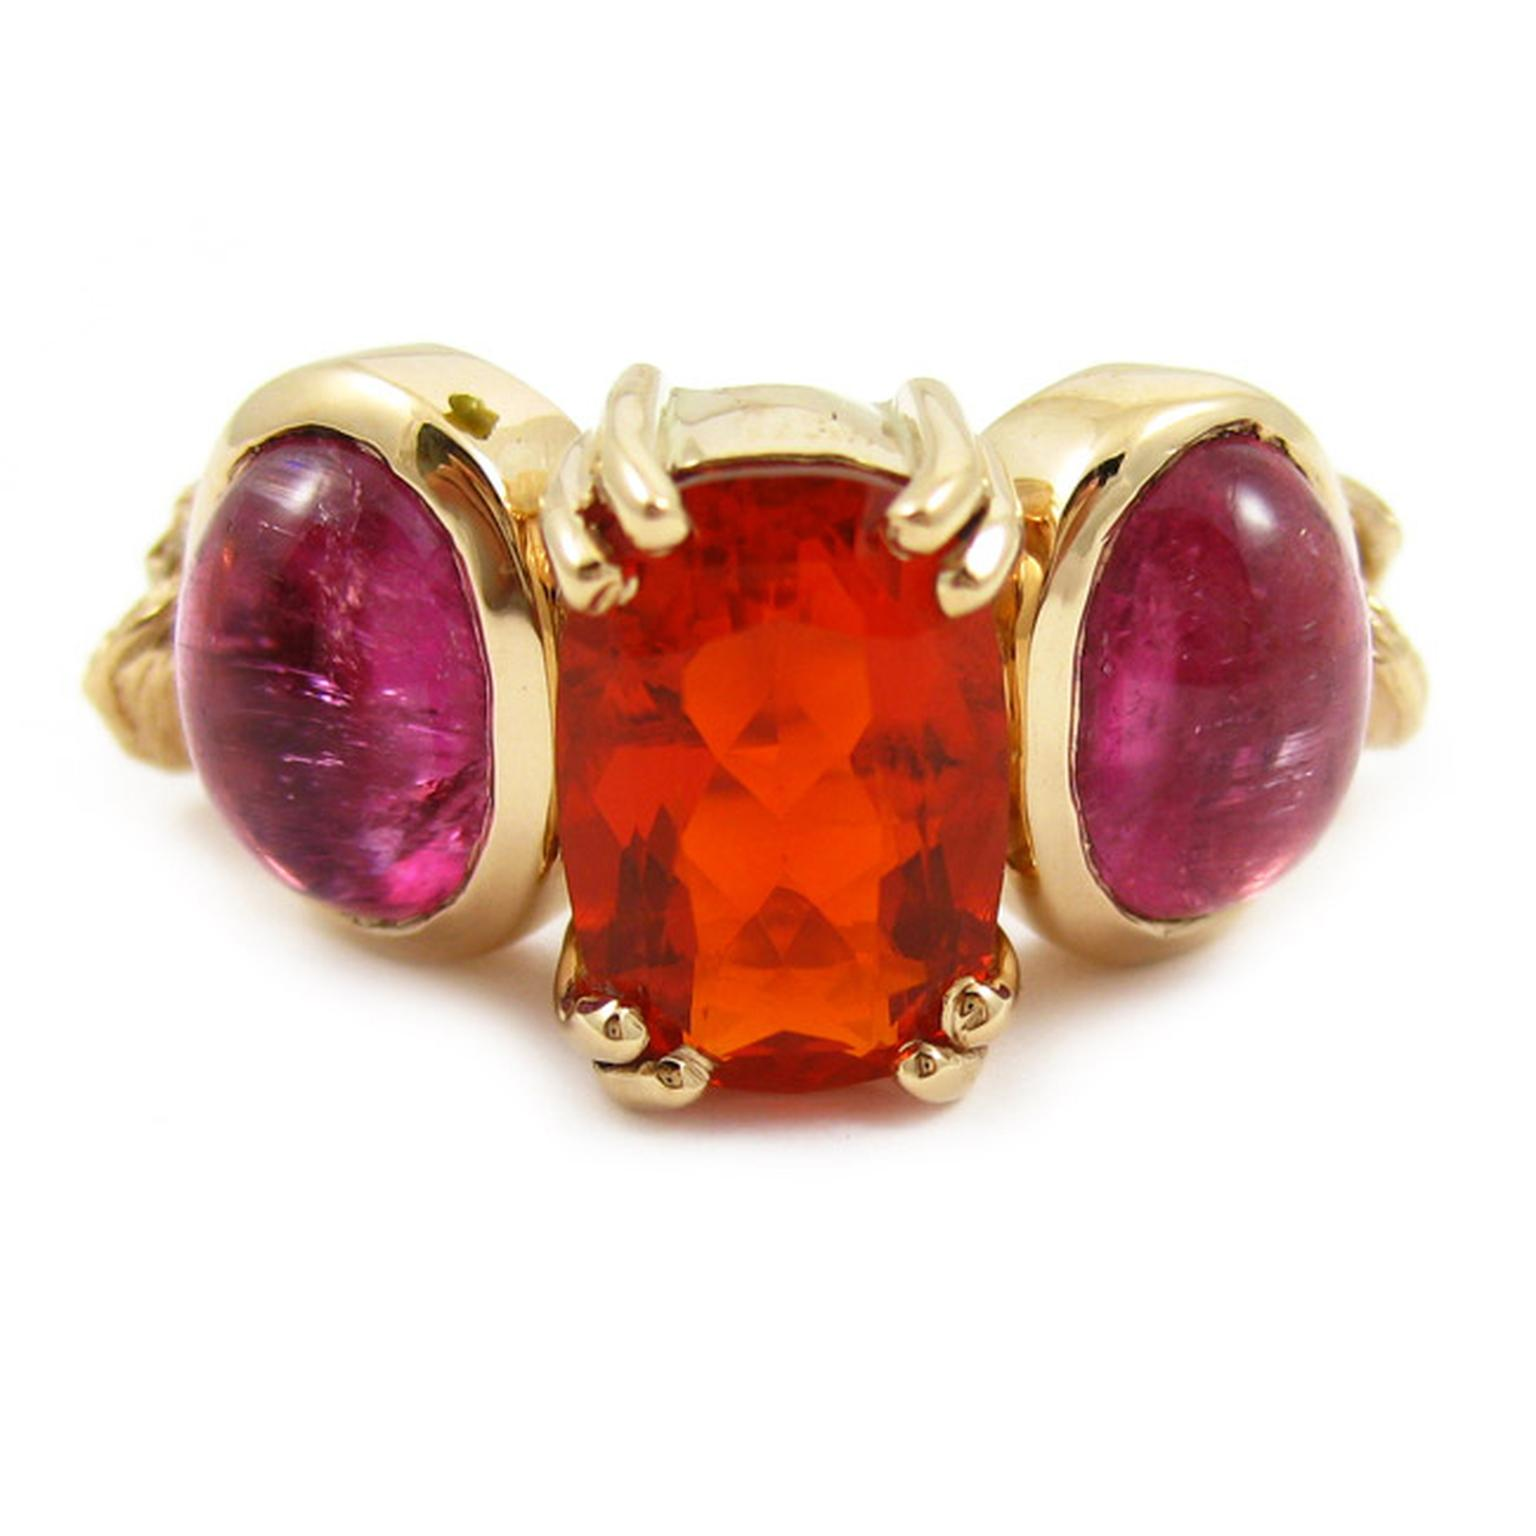 K. Brunini Chains of Love Twig ring in rose gold with a Mexican fire opal centre stone flanked by pink tourmaline cabochons.